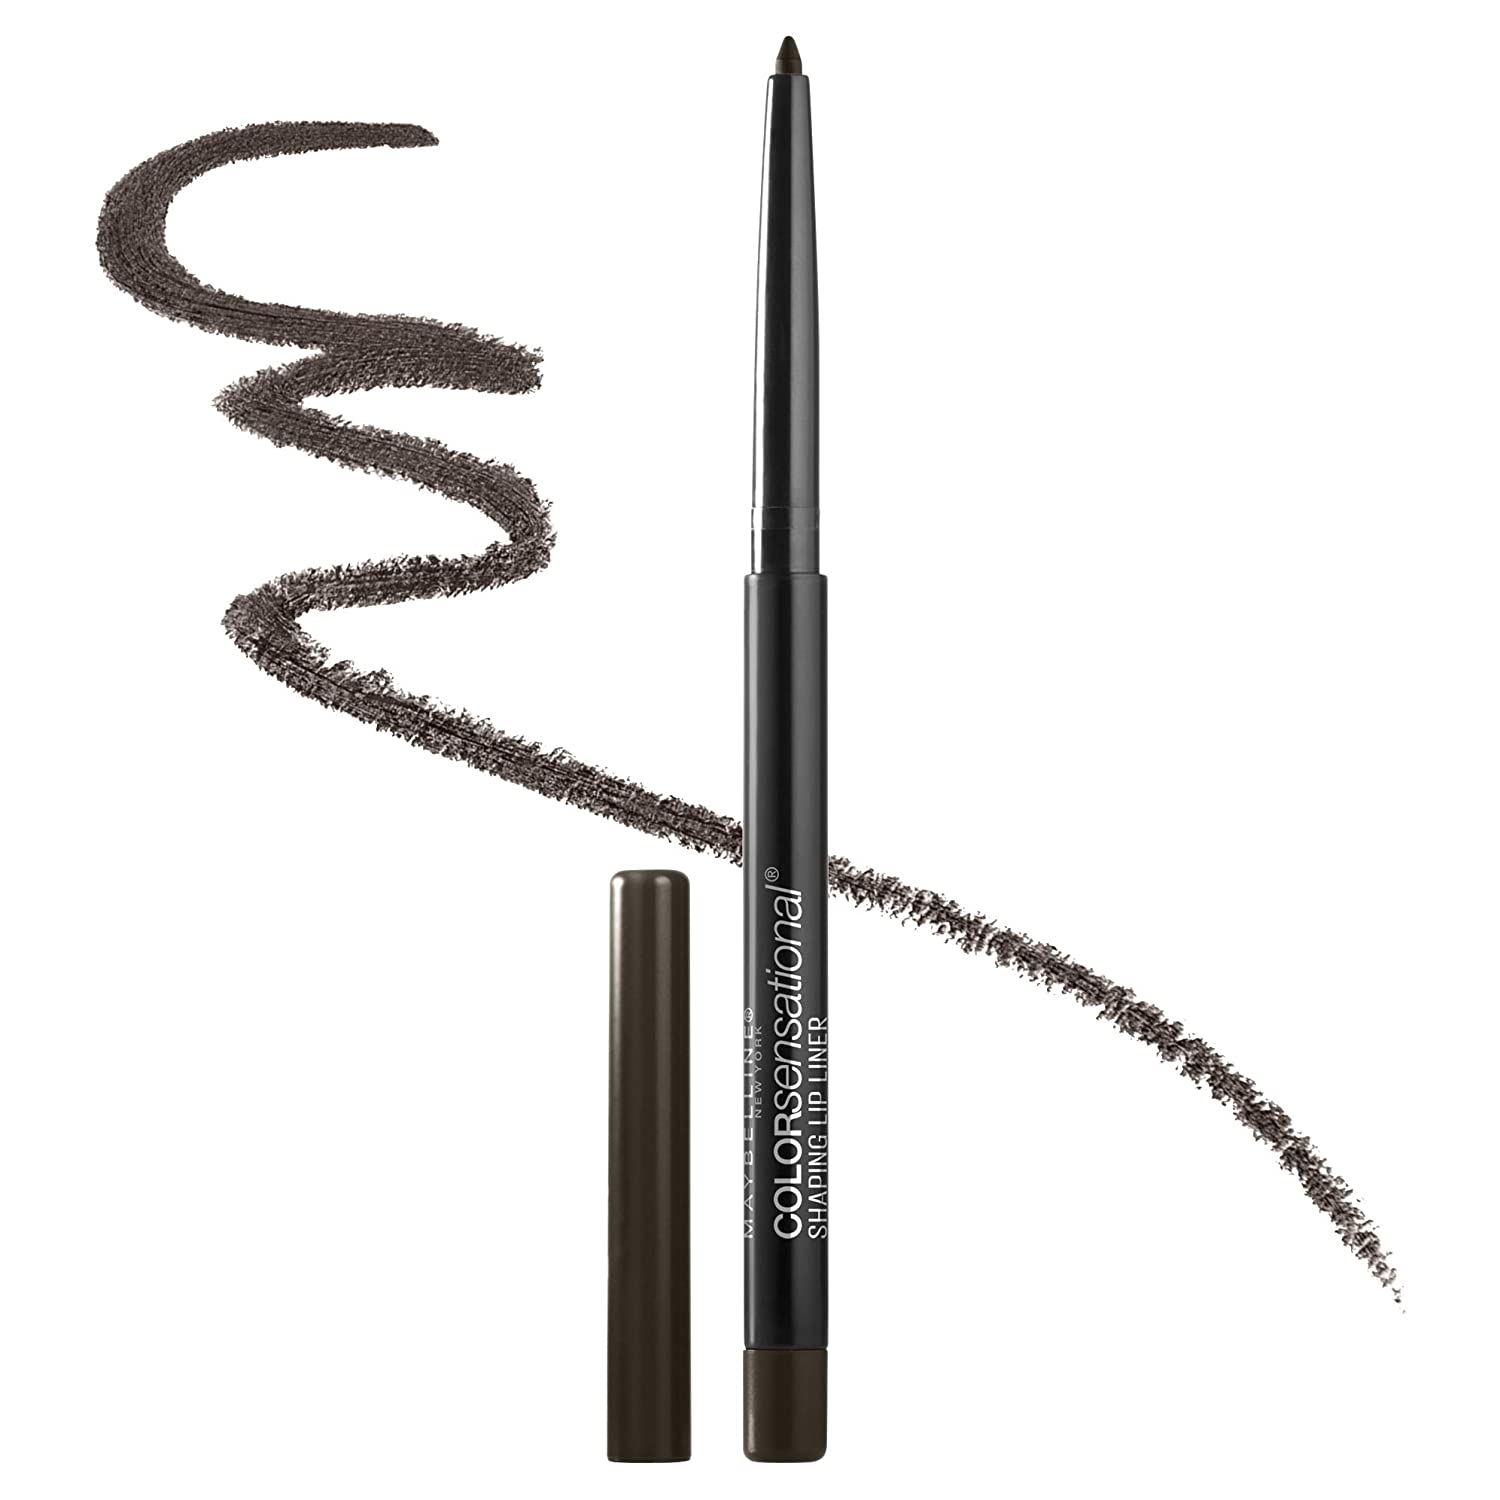 Maybelline New York Color Sensational Shaping Lip Liner Makeup, Raw Chocolate, 0.01 oz.